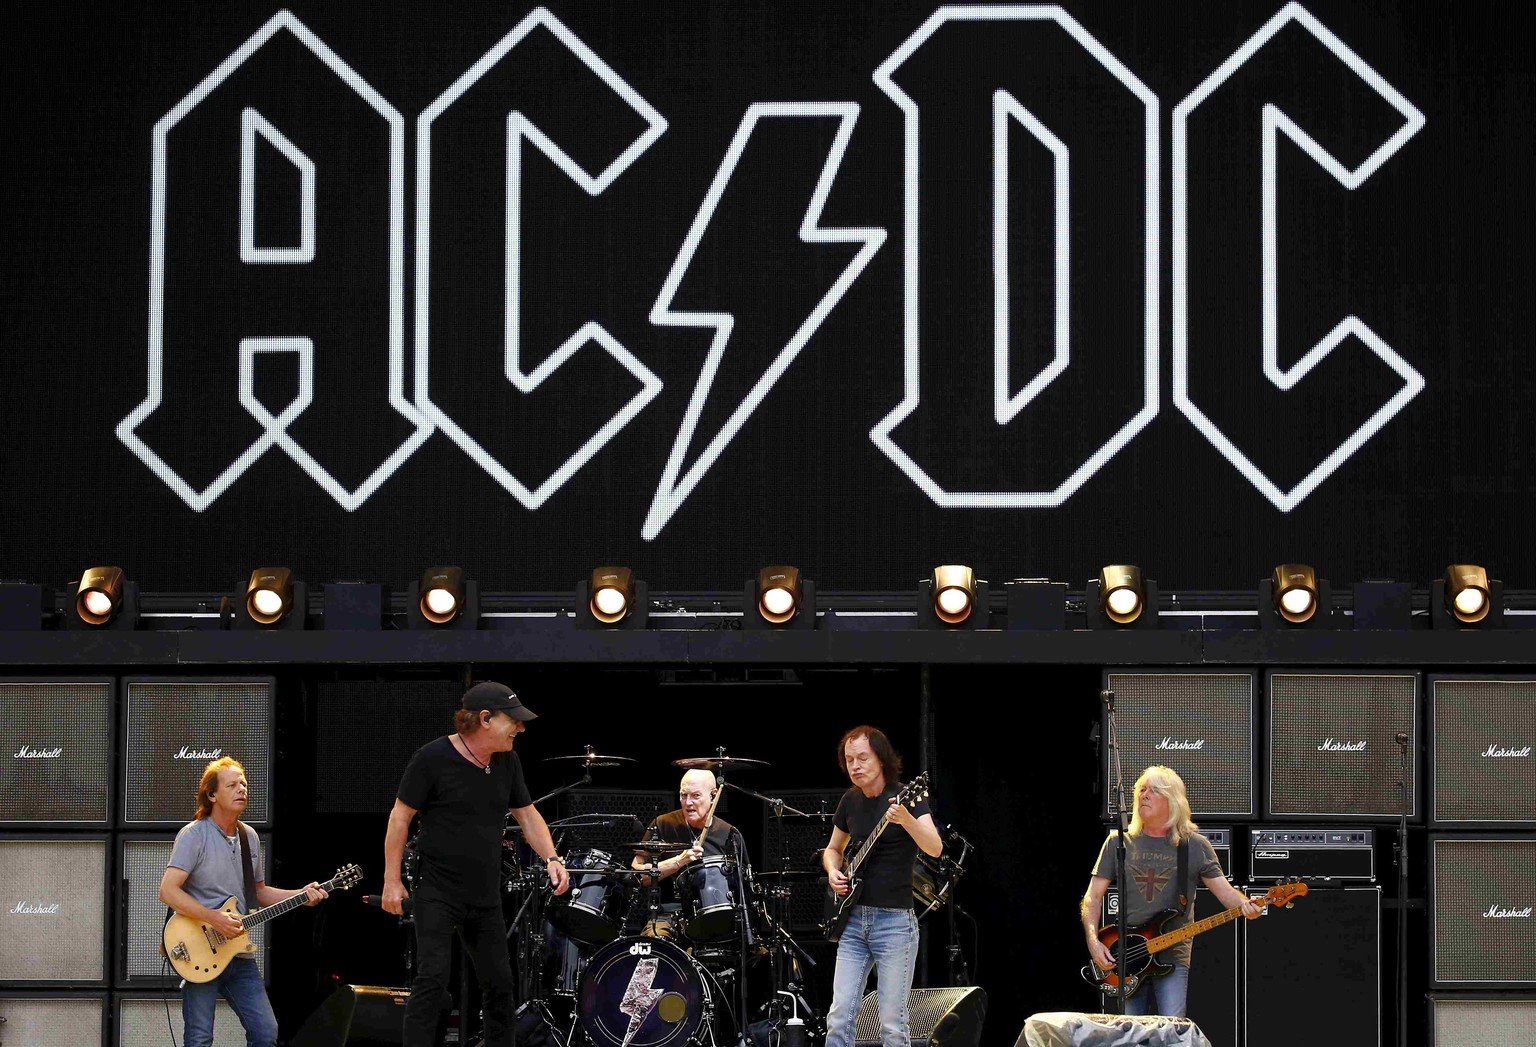 Members of the rock group AC/DC (L-R) Stevie Young, Brian Johnson, Chris Slade, Angus Young and Cliff Williams perform during a rehearsal at Stadium Australia in Sydney, Australia in this November 3, 2015 file photo. Veteran rock band AC/DC has been forced to reschedule 10 dates on the U.S. leg of its